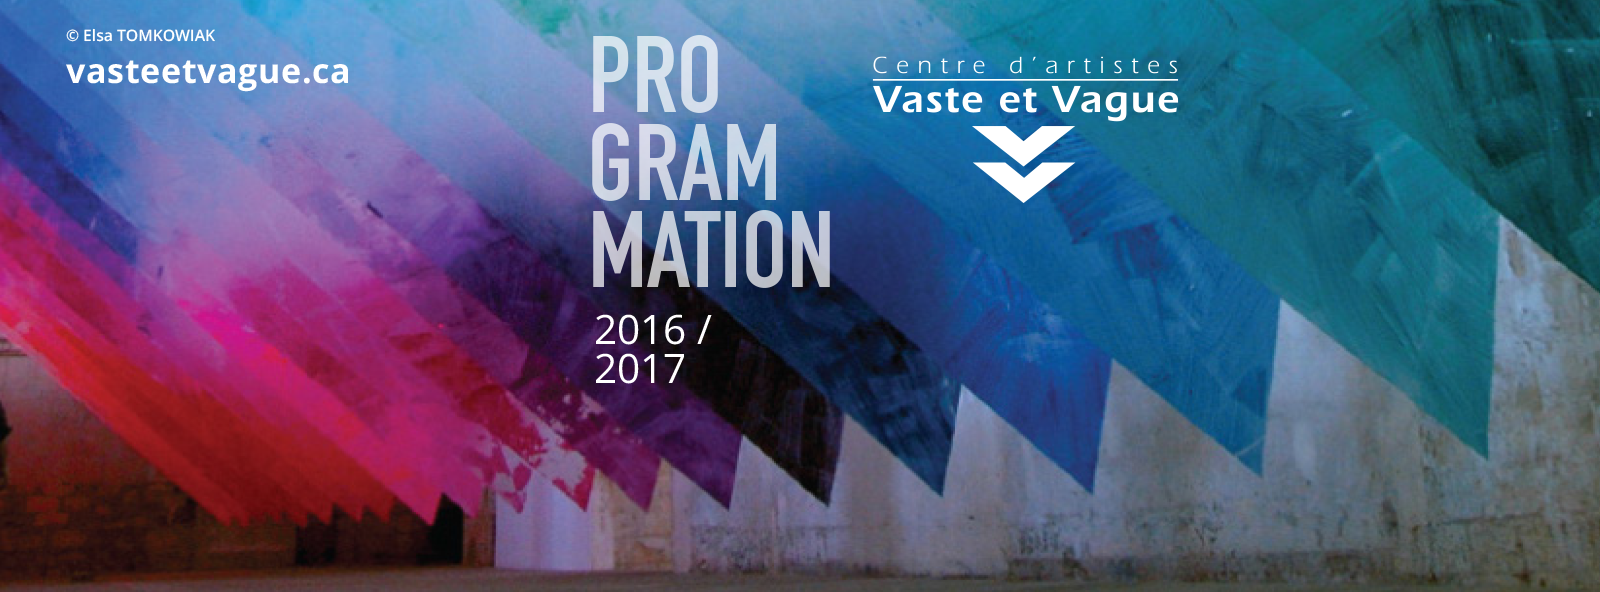 PROGRAMMATION 2016-2017 Centre d'artistes vaste et Vague